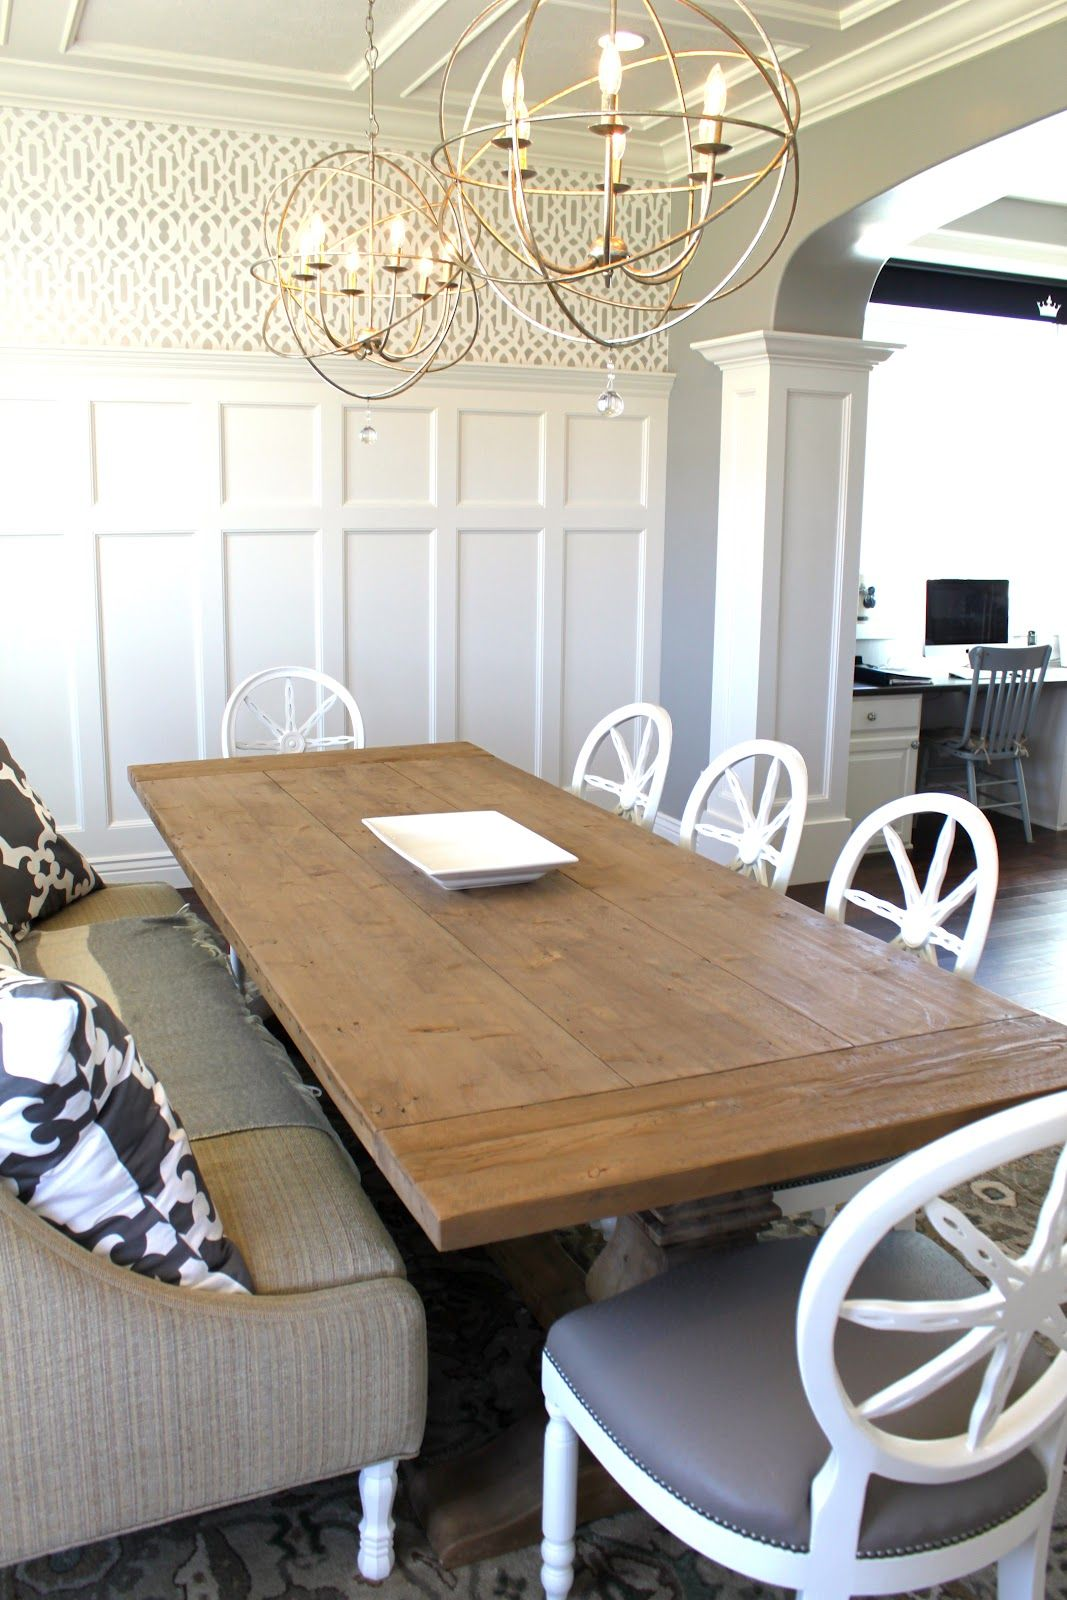 I Love Having Comfy Chairs At The Dining Room Table Perfect For Lounging With Wine After Eating Dining Room Design Fabric Dining Chairs